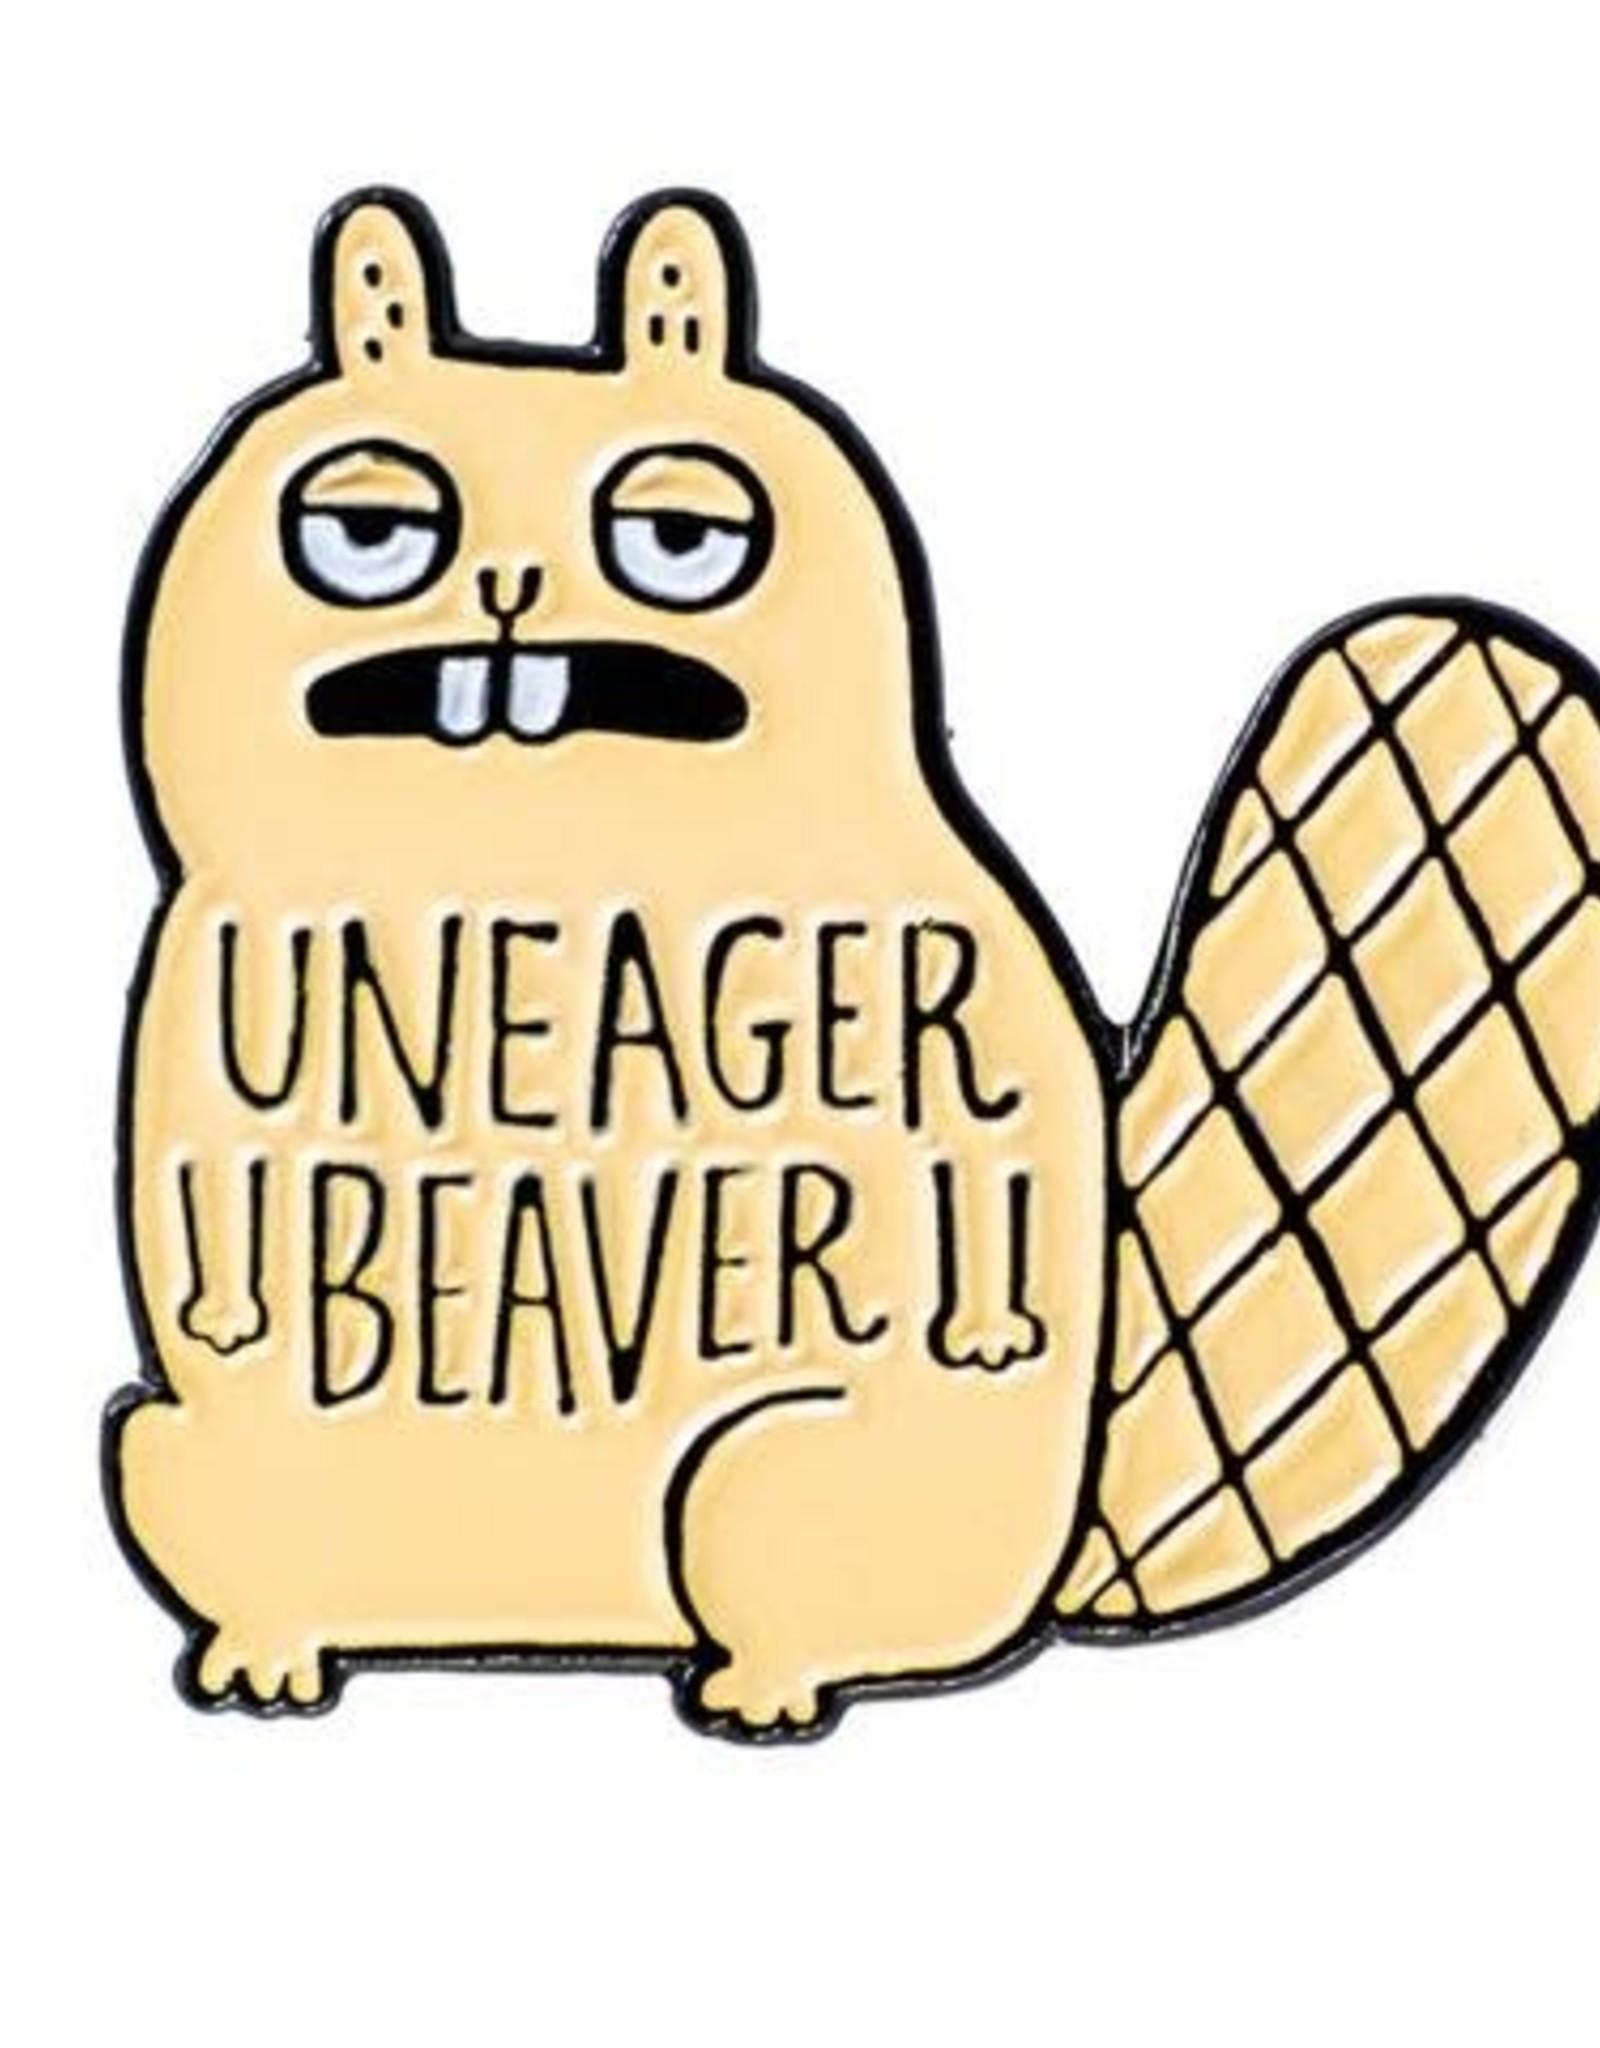 Gemma Correll ''Uneager Beaver'' Enamel Pin by Gemma Correll